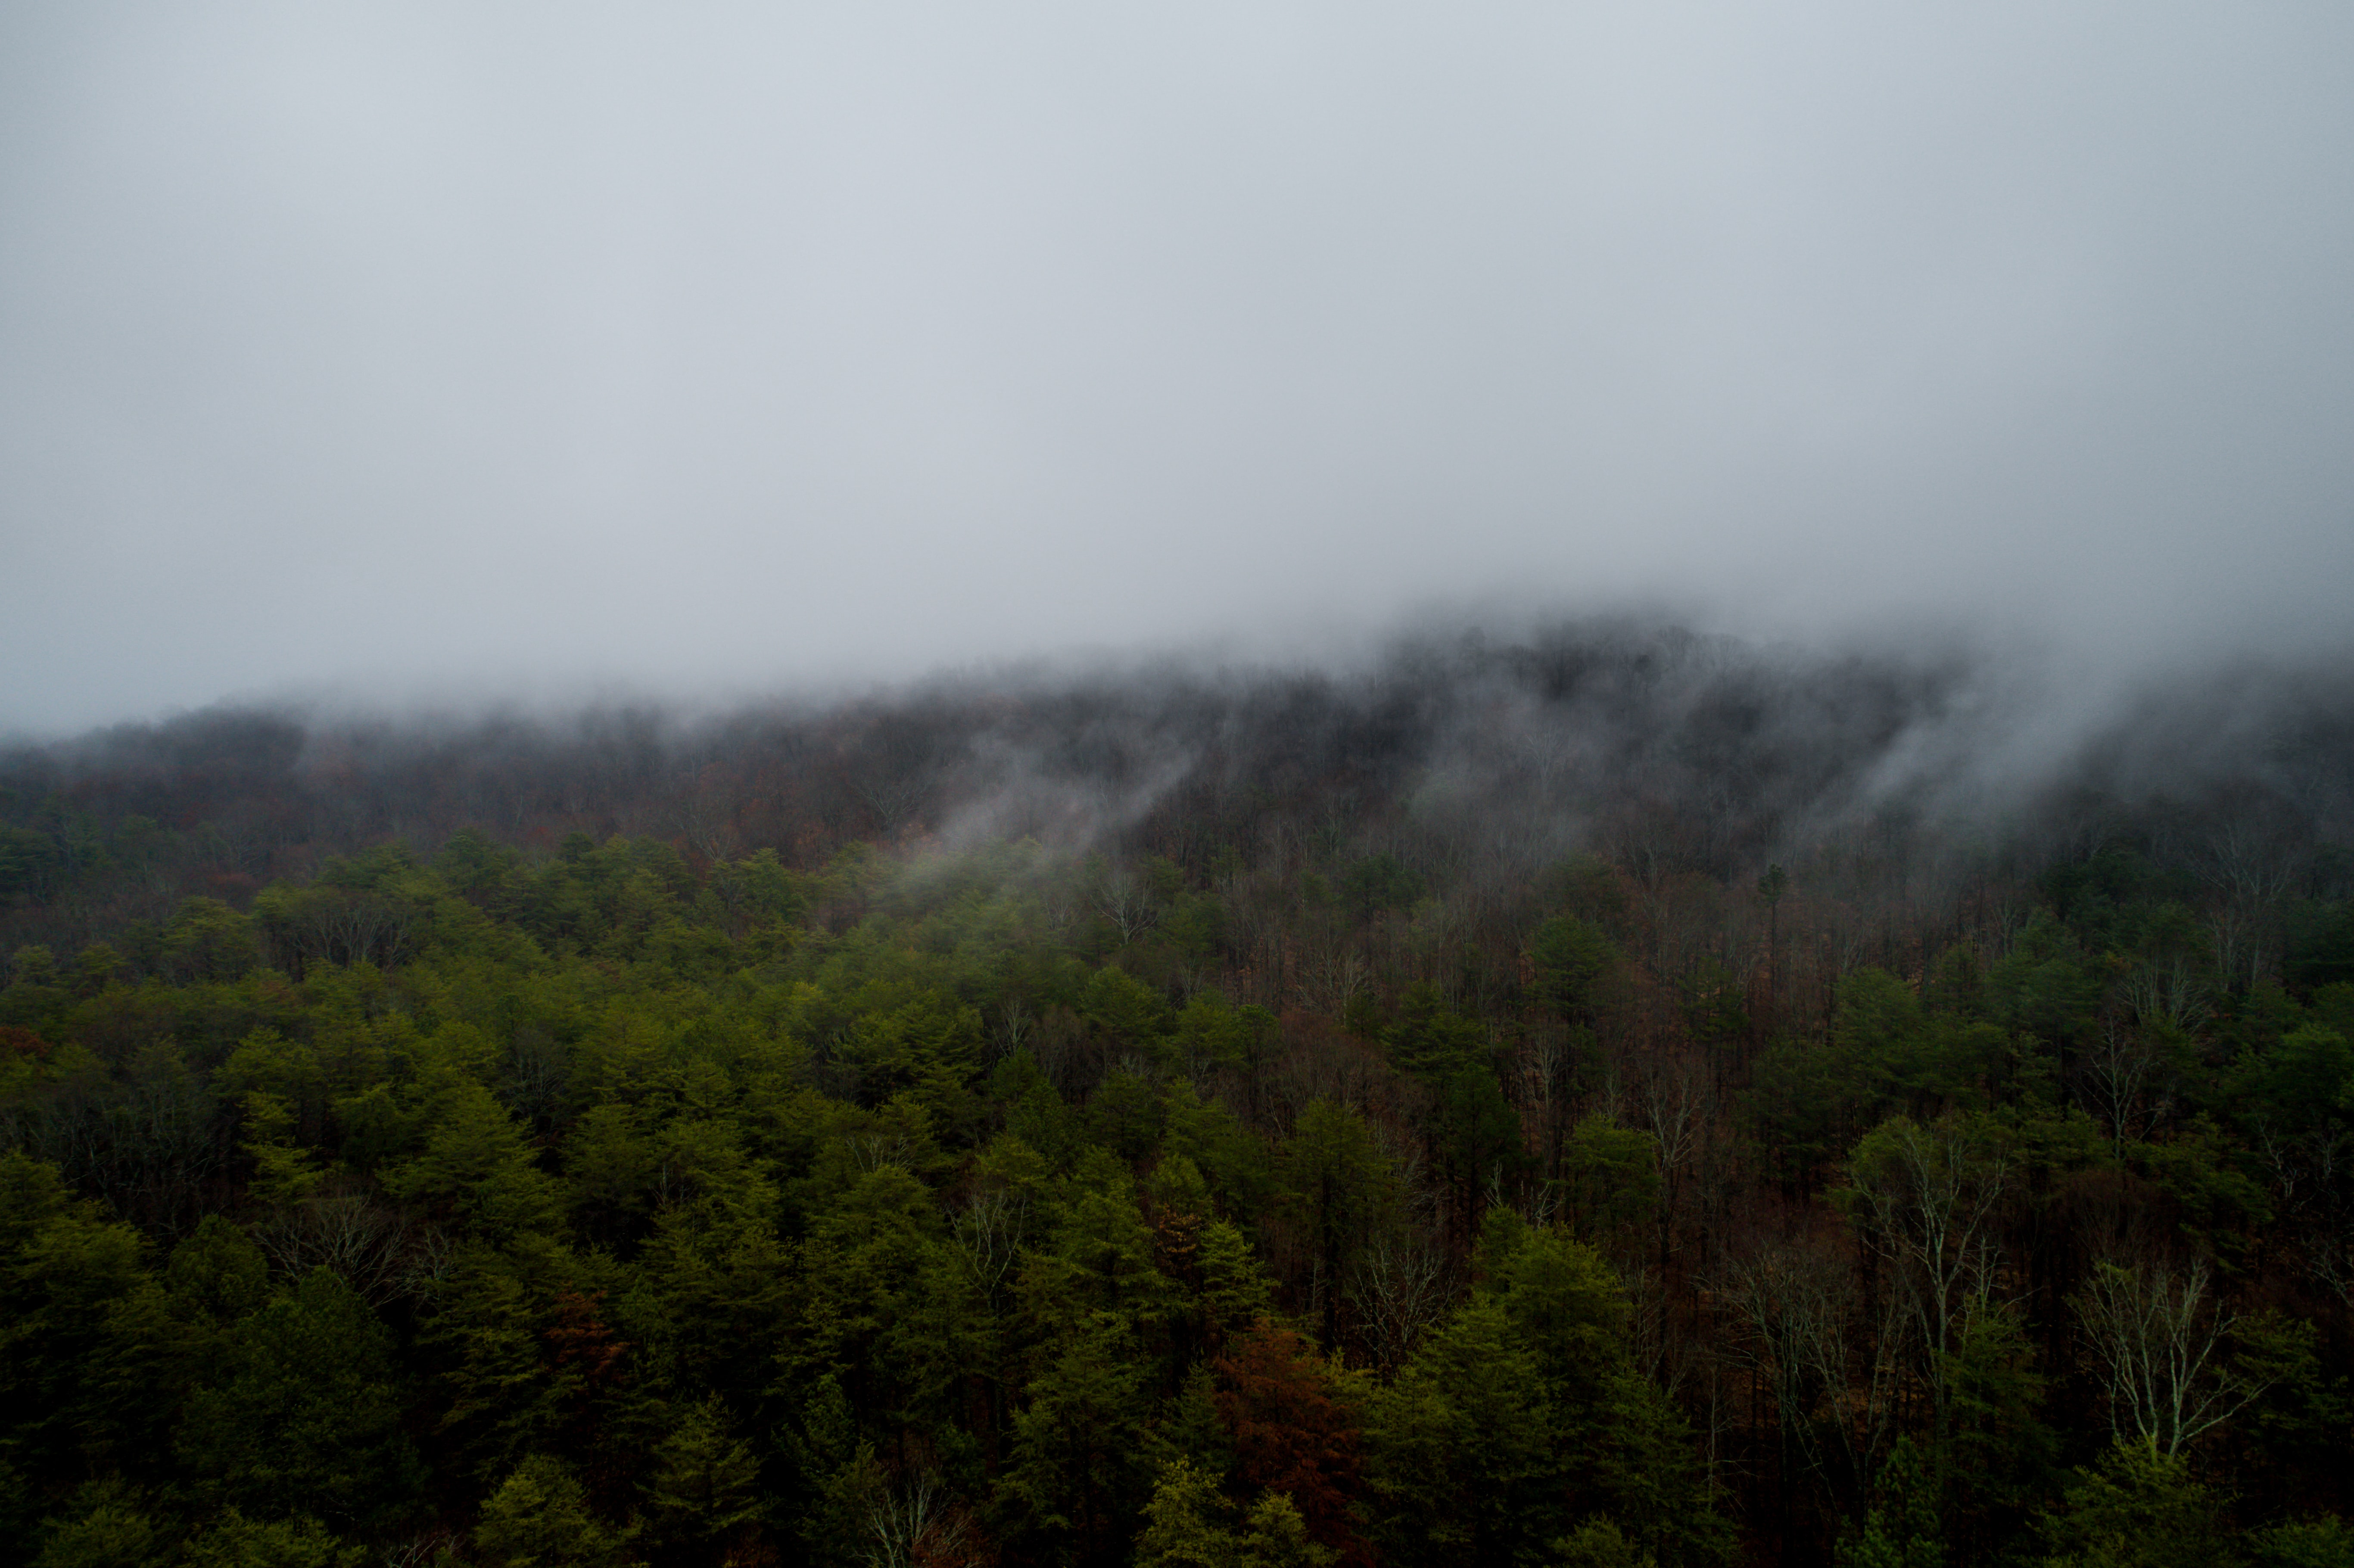 Fog over a forest with green and brown trees